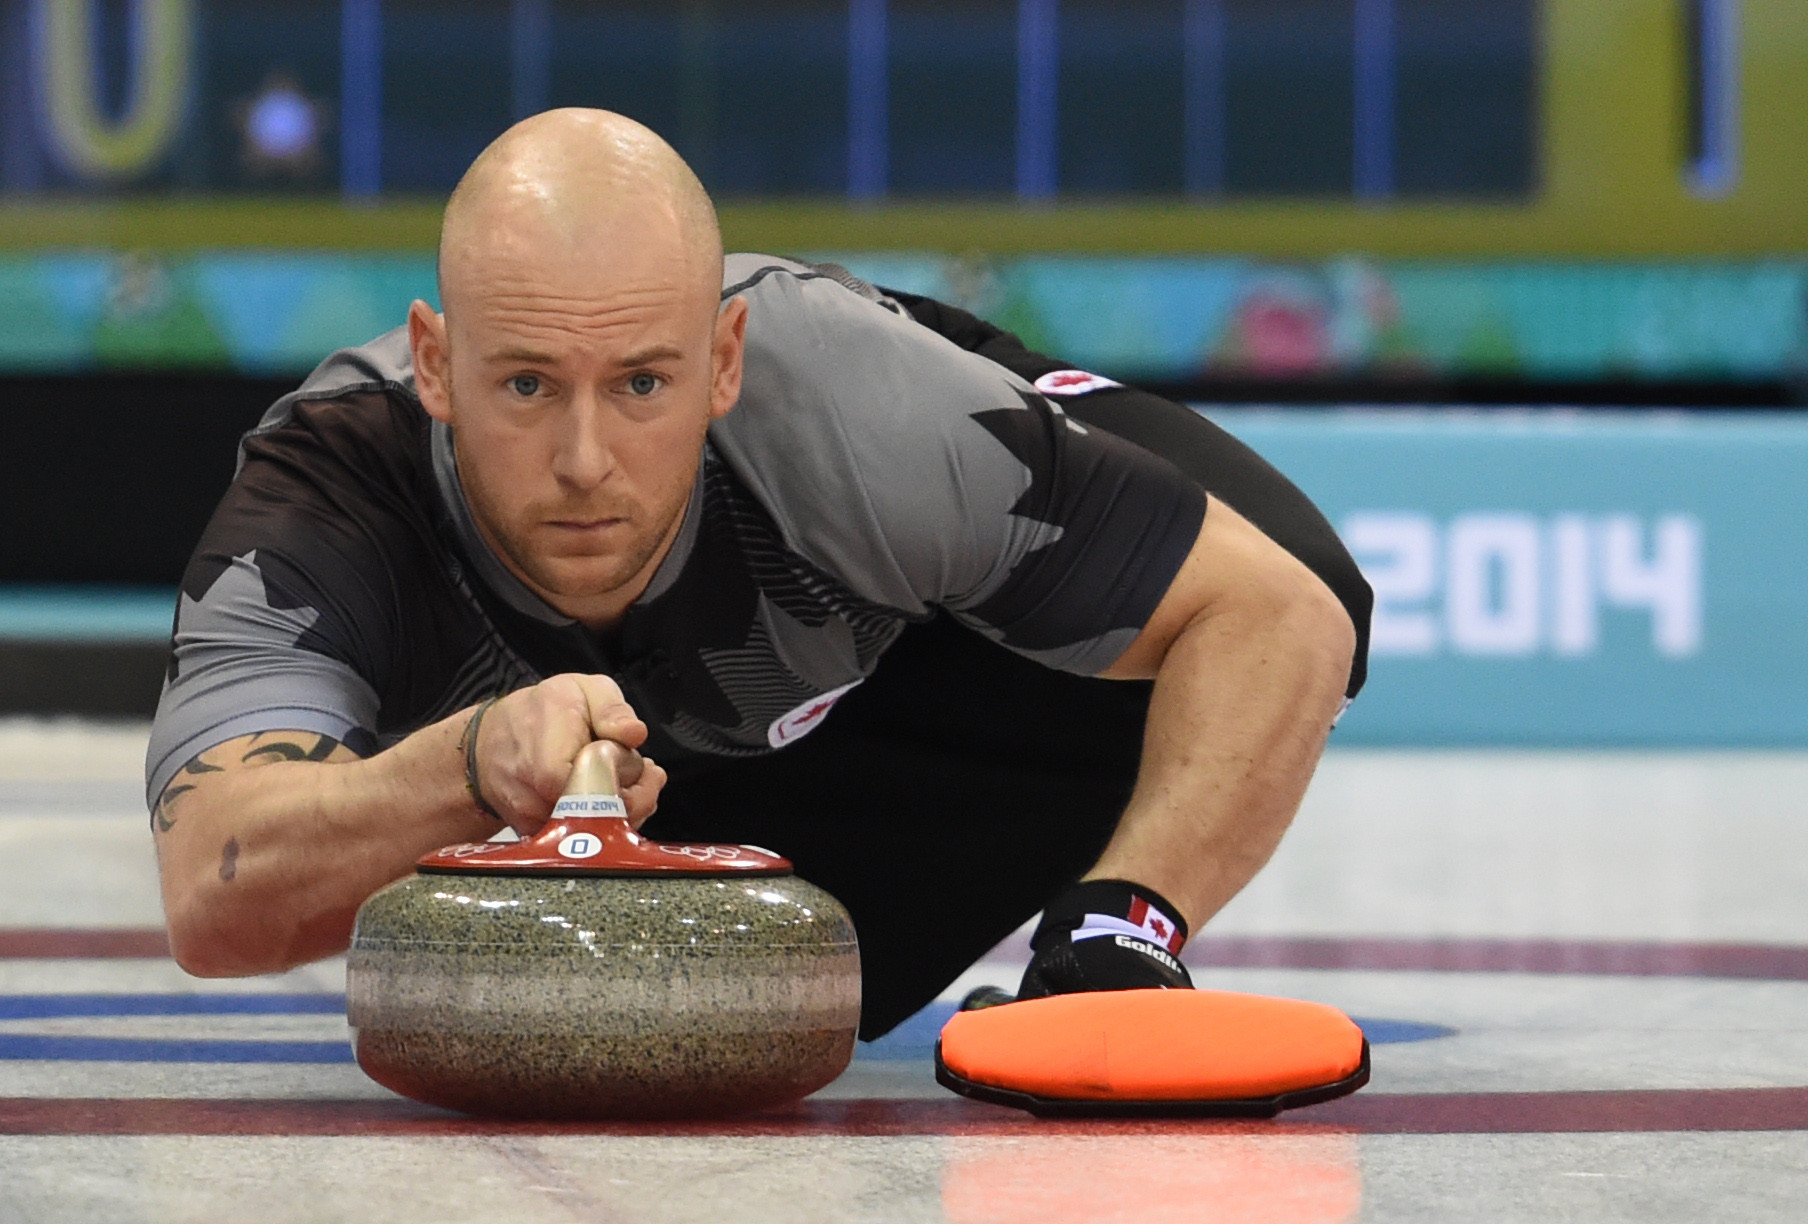 Canadian Olympic gold medalist disqualified from curling tournament for drunkenness